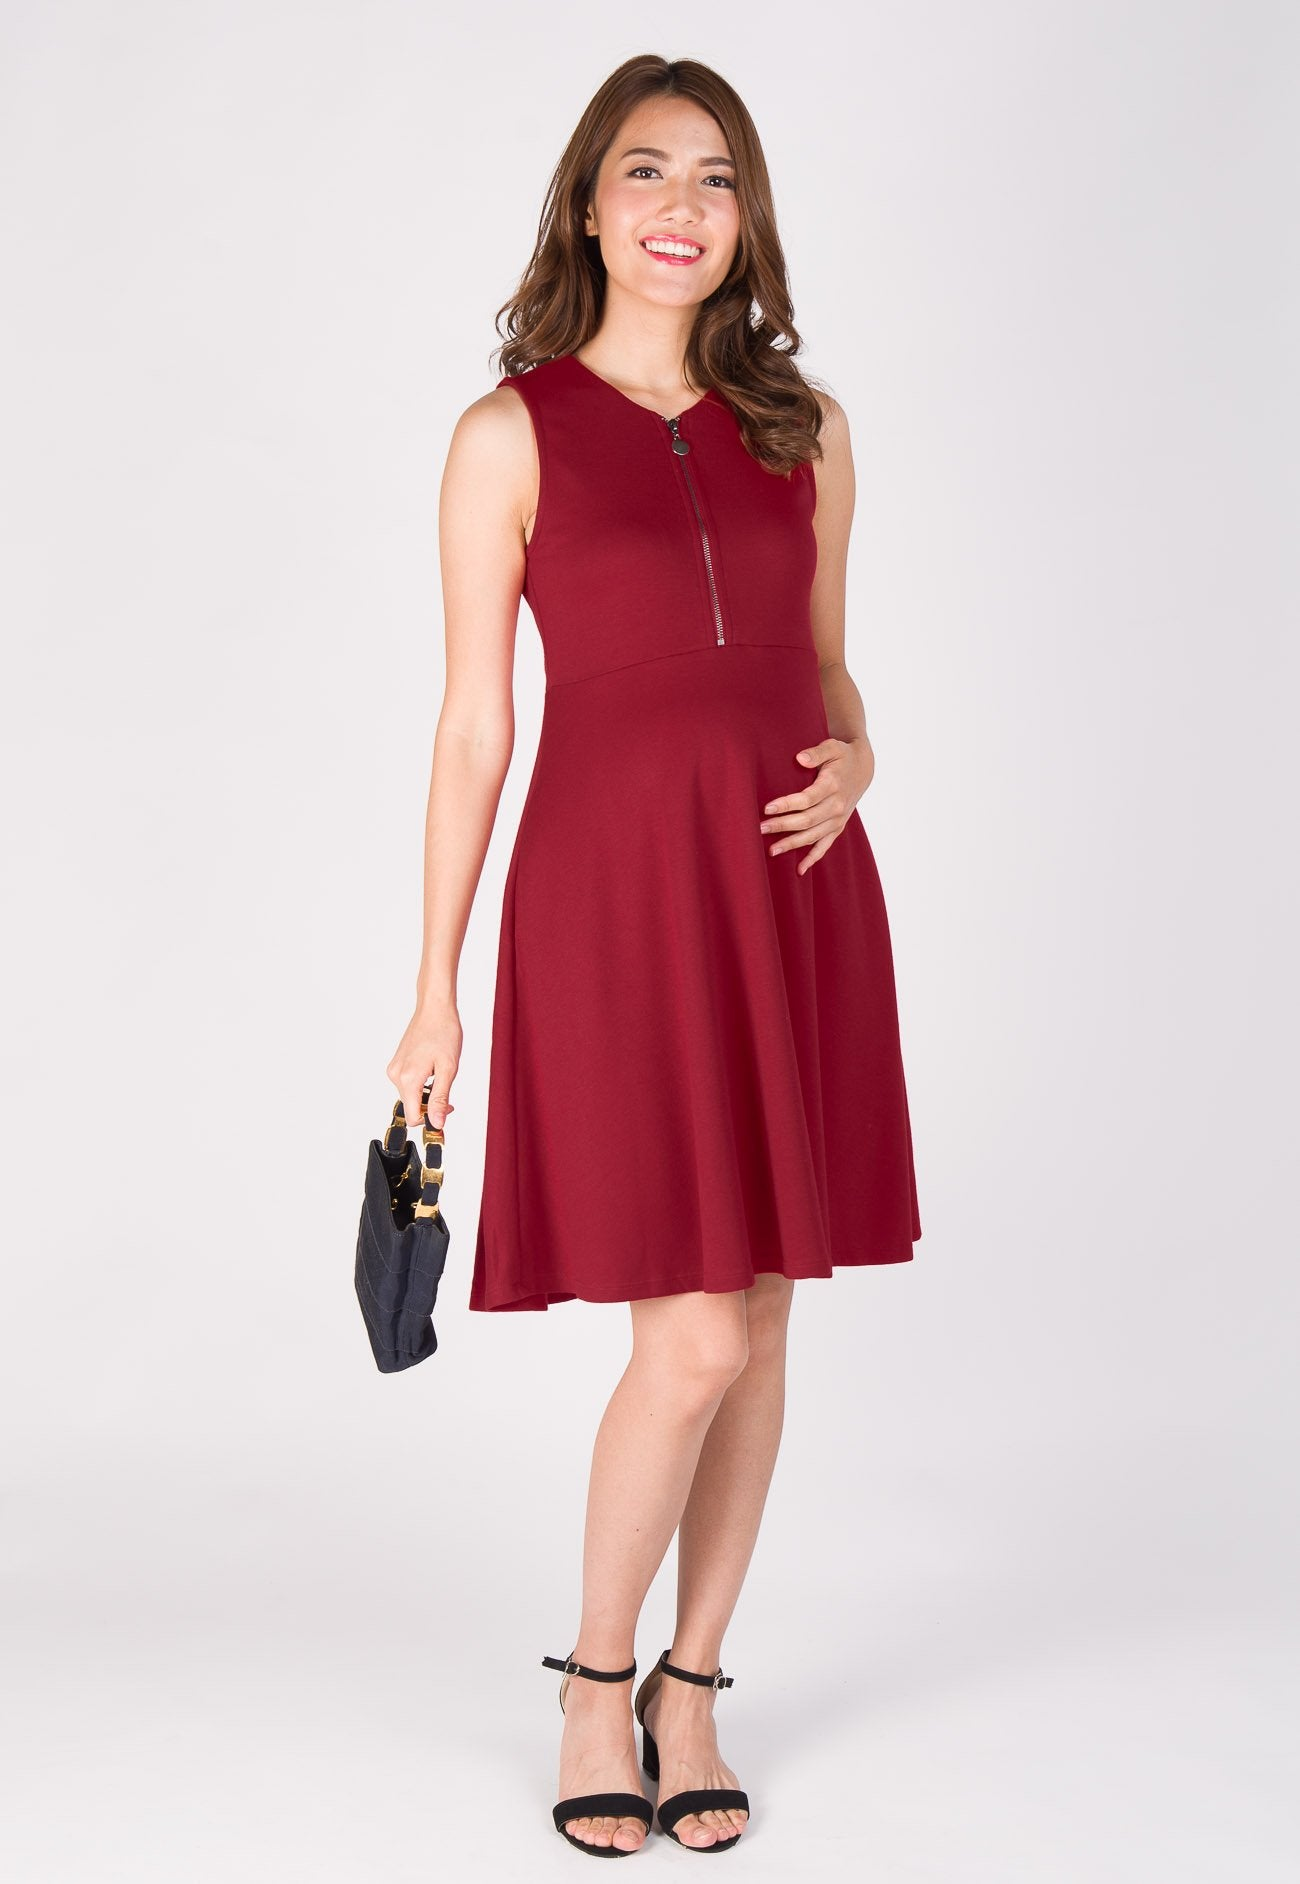 Fit and Flair Front Zip Nursing Dress in Red  by Jump Eat Cry - Maternity and nursing wear